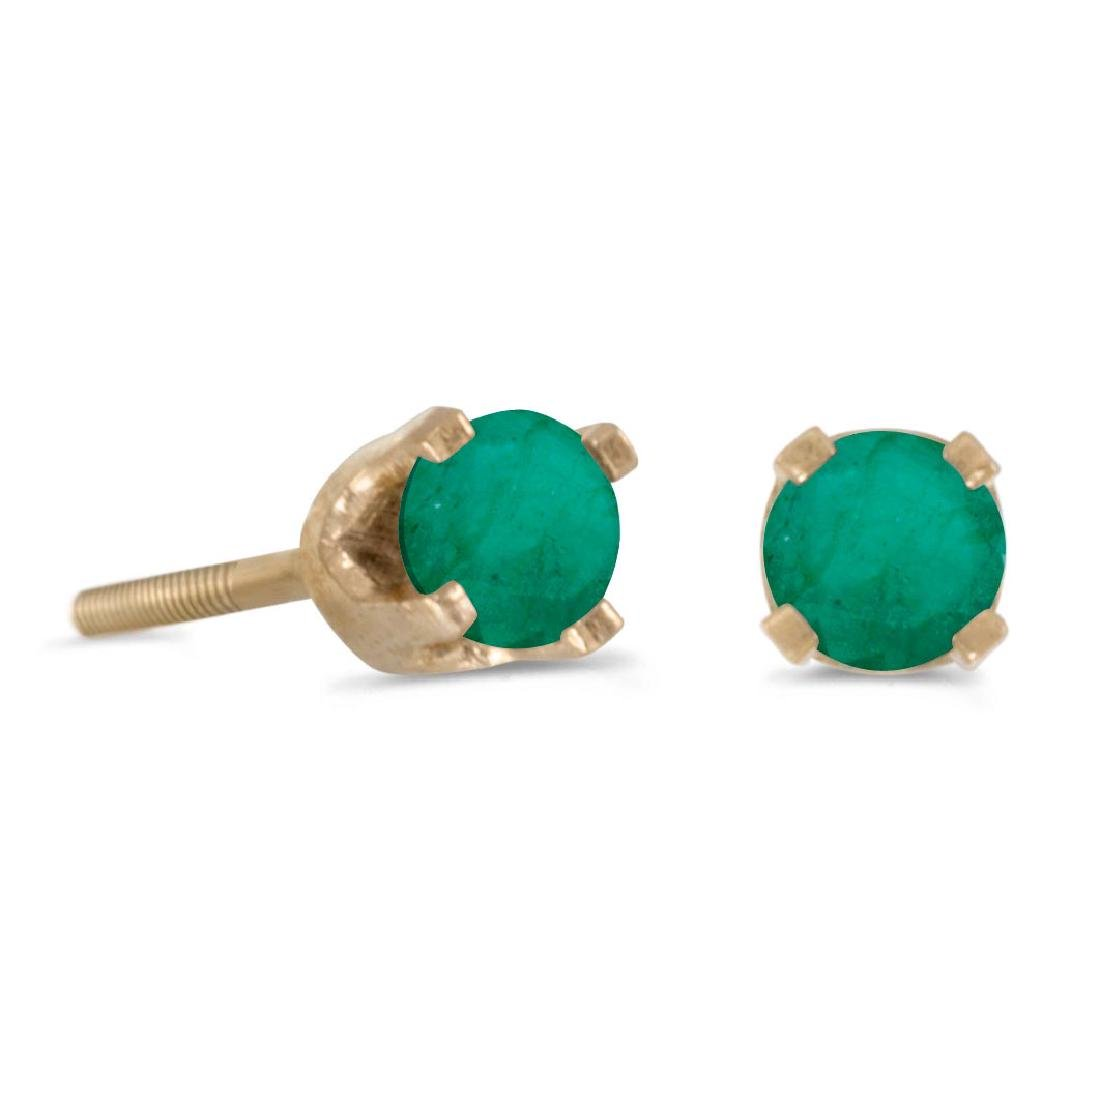 Certified 3 mm Petite Round Emerald Screw-back Stud Ear